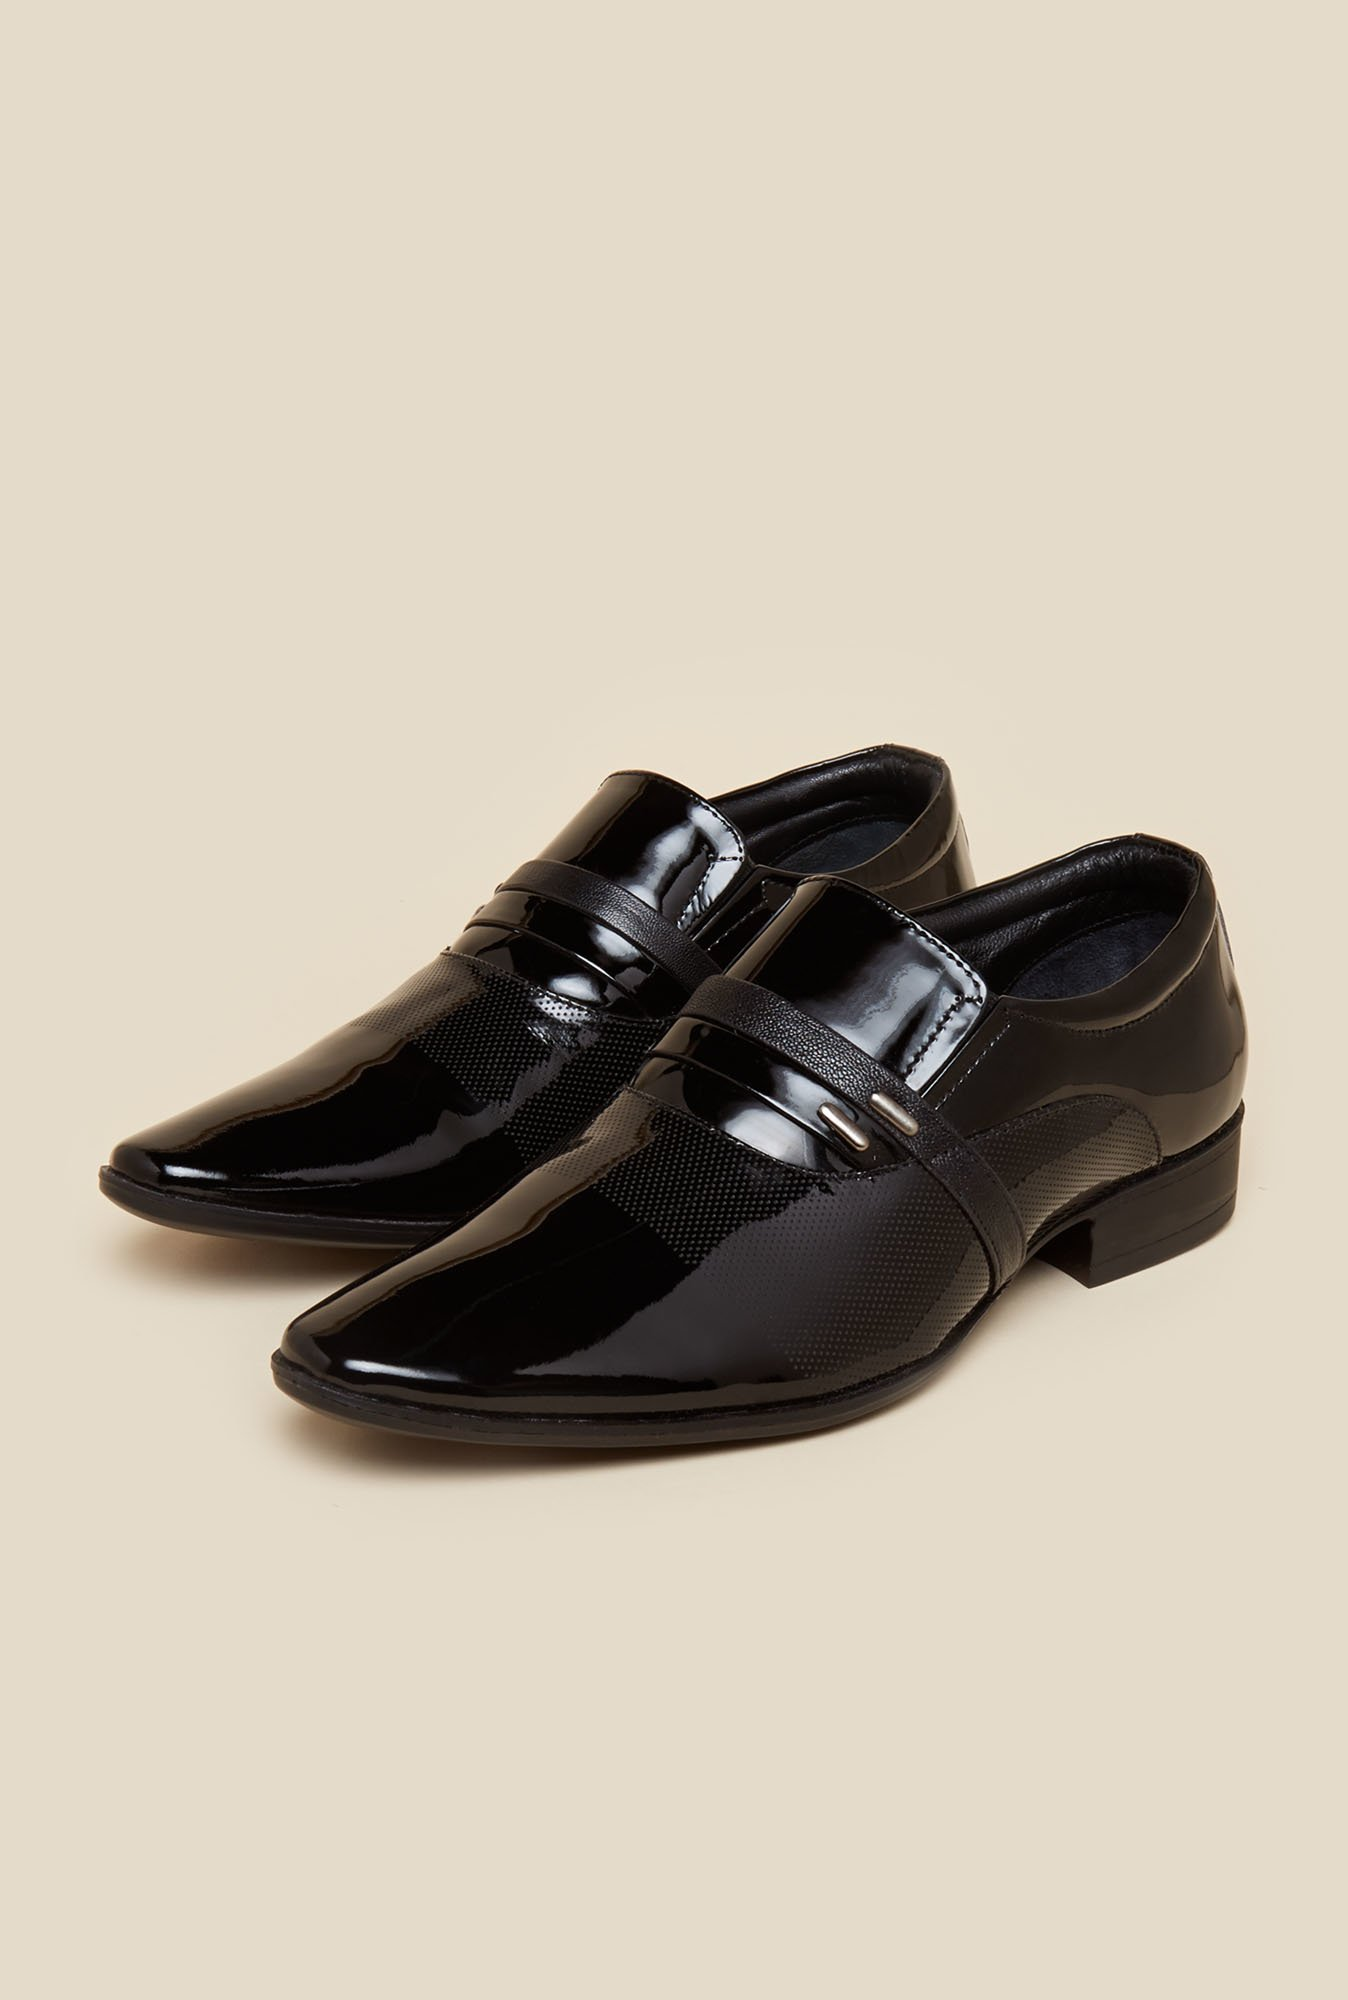 Metro Black Slip-On Shoes